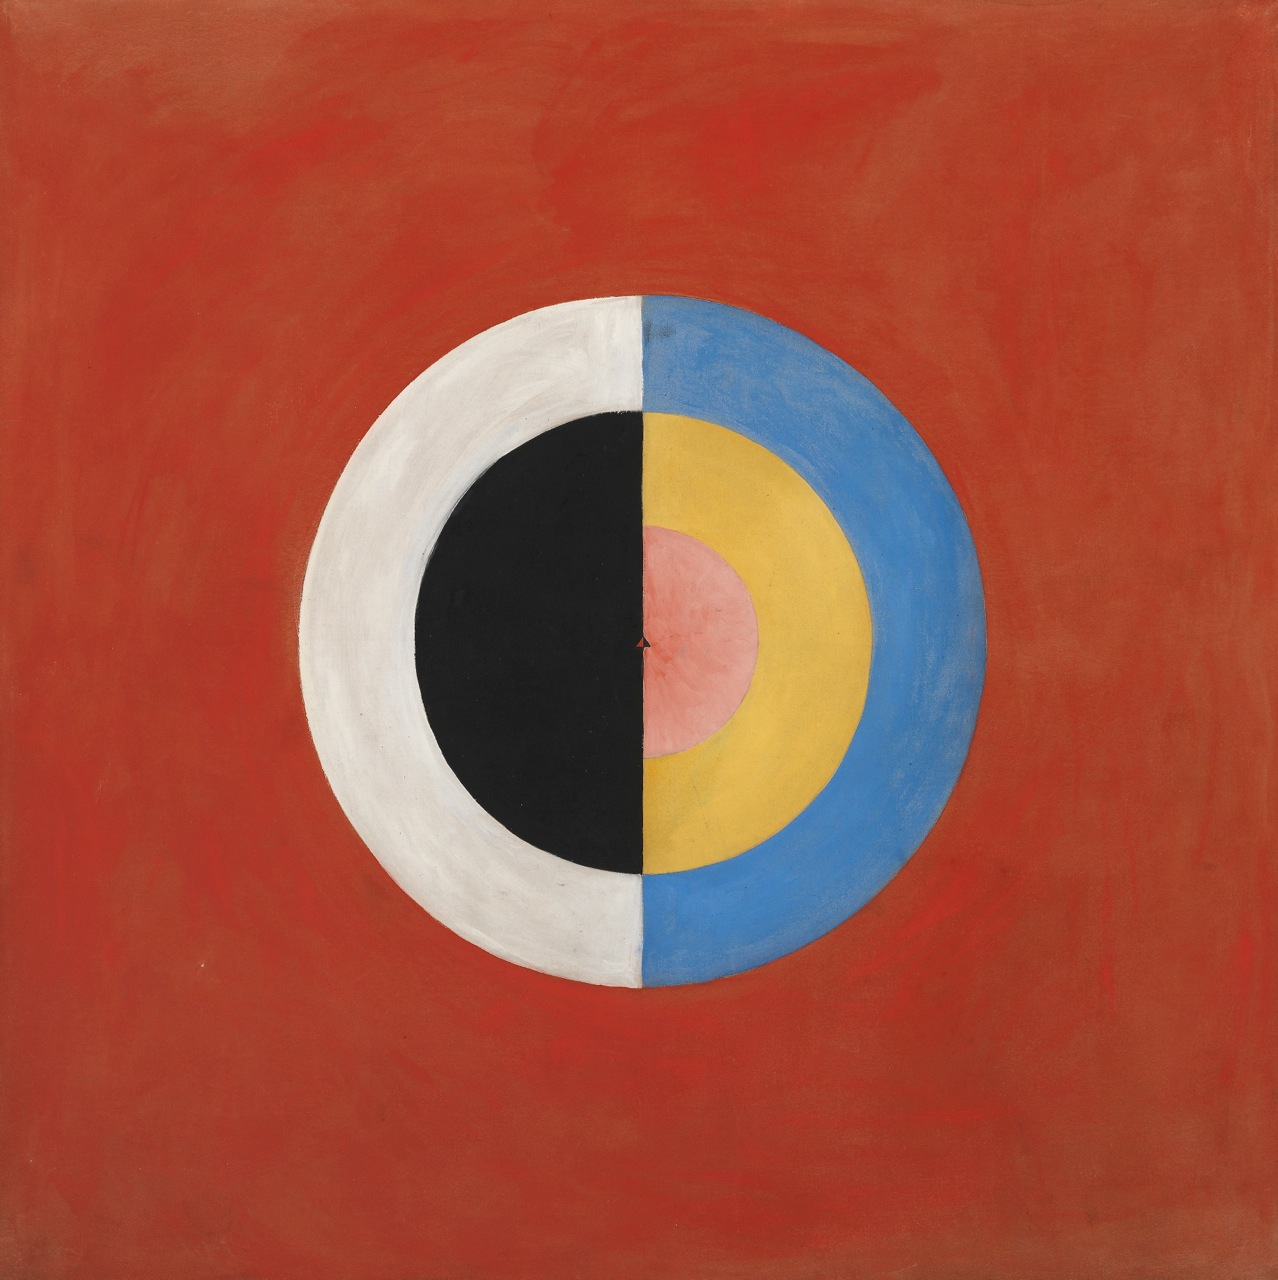 Who Painted the First Abstract Painting?: Wassily Kandinsky? Hilma af Klint? Or Another Contender? Artes & contextos Hilma af Klint Svanen